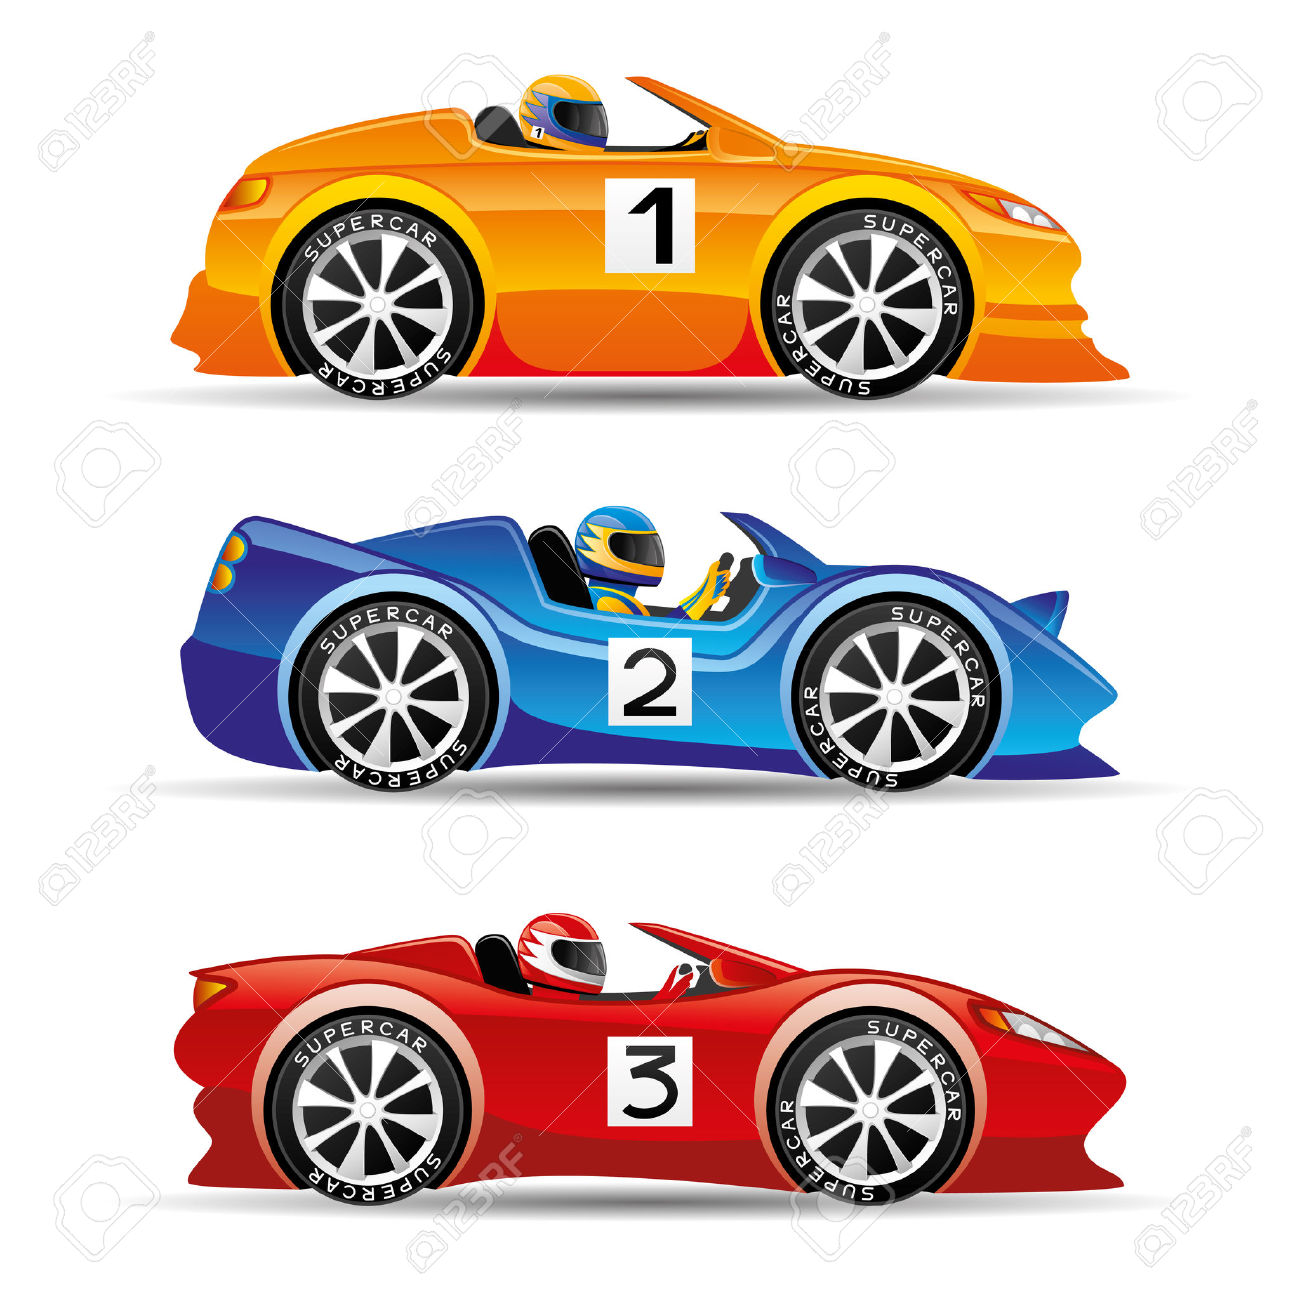 Stock car race car clipart clip art black and white download Racing Cars. Royalty Free Cliparts, Vectors, And Stock ... clip art black and white download